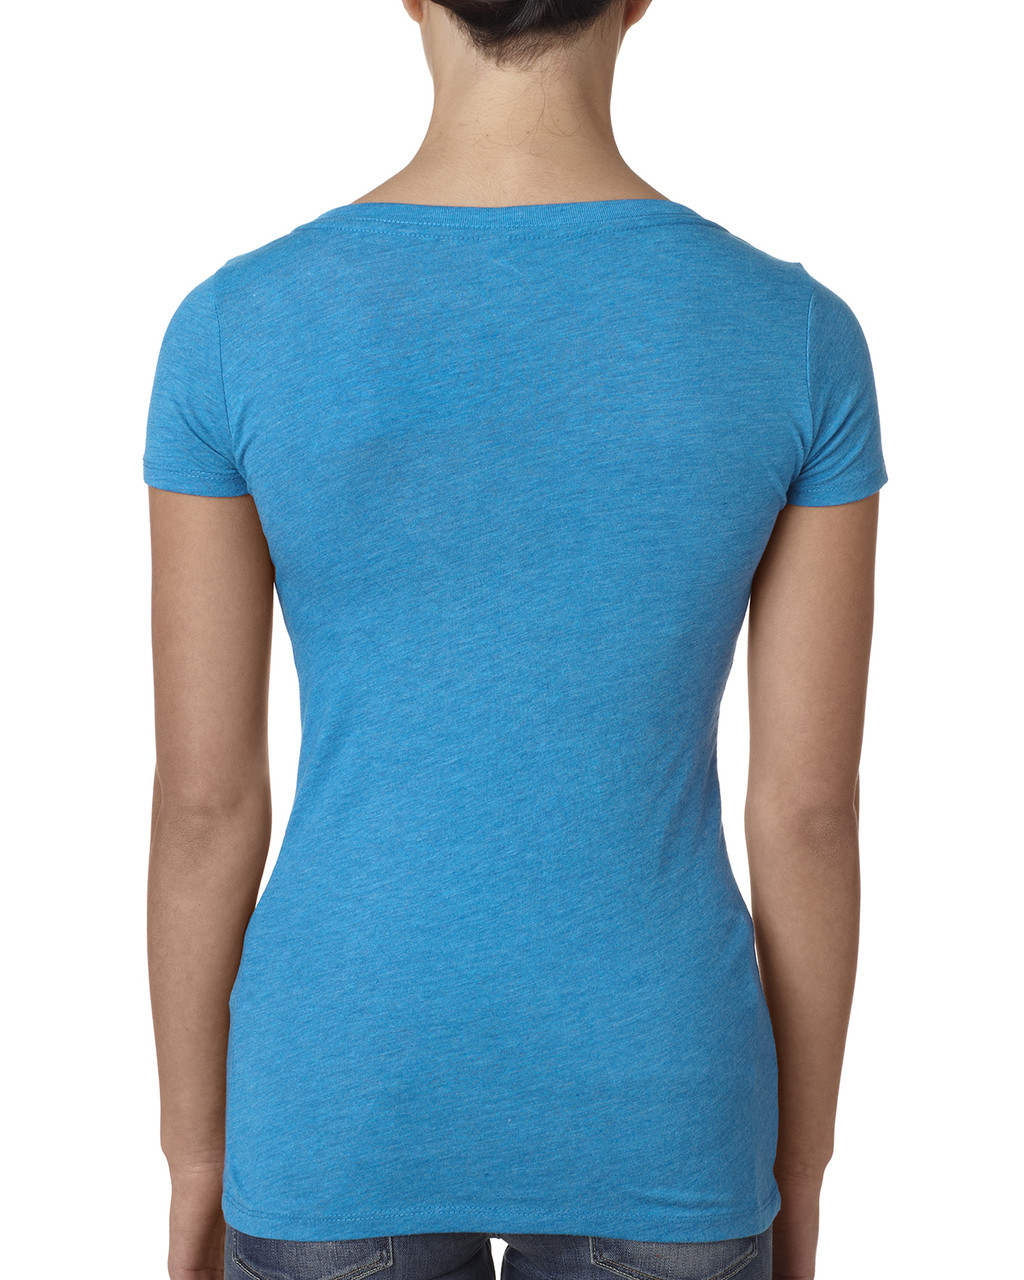 Vintage Turq, back 6730 Next Level Ladies' Tri-Blend Scoop Tee | Blankclothing.ca